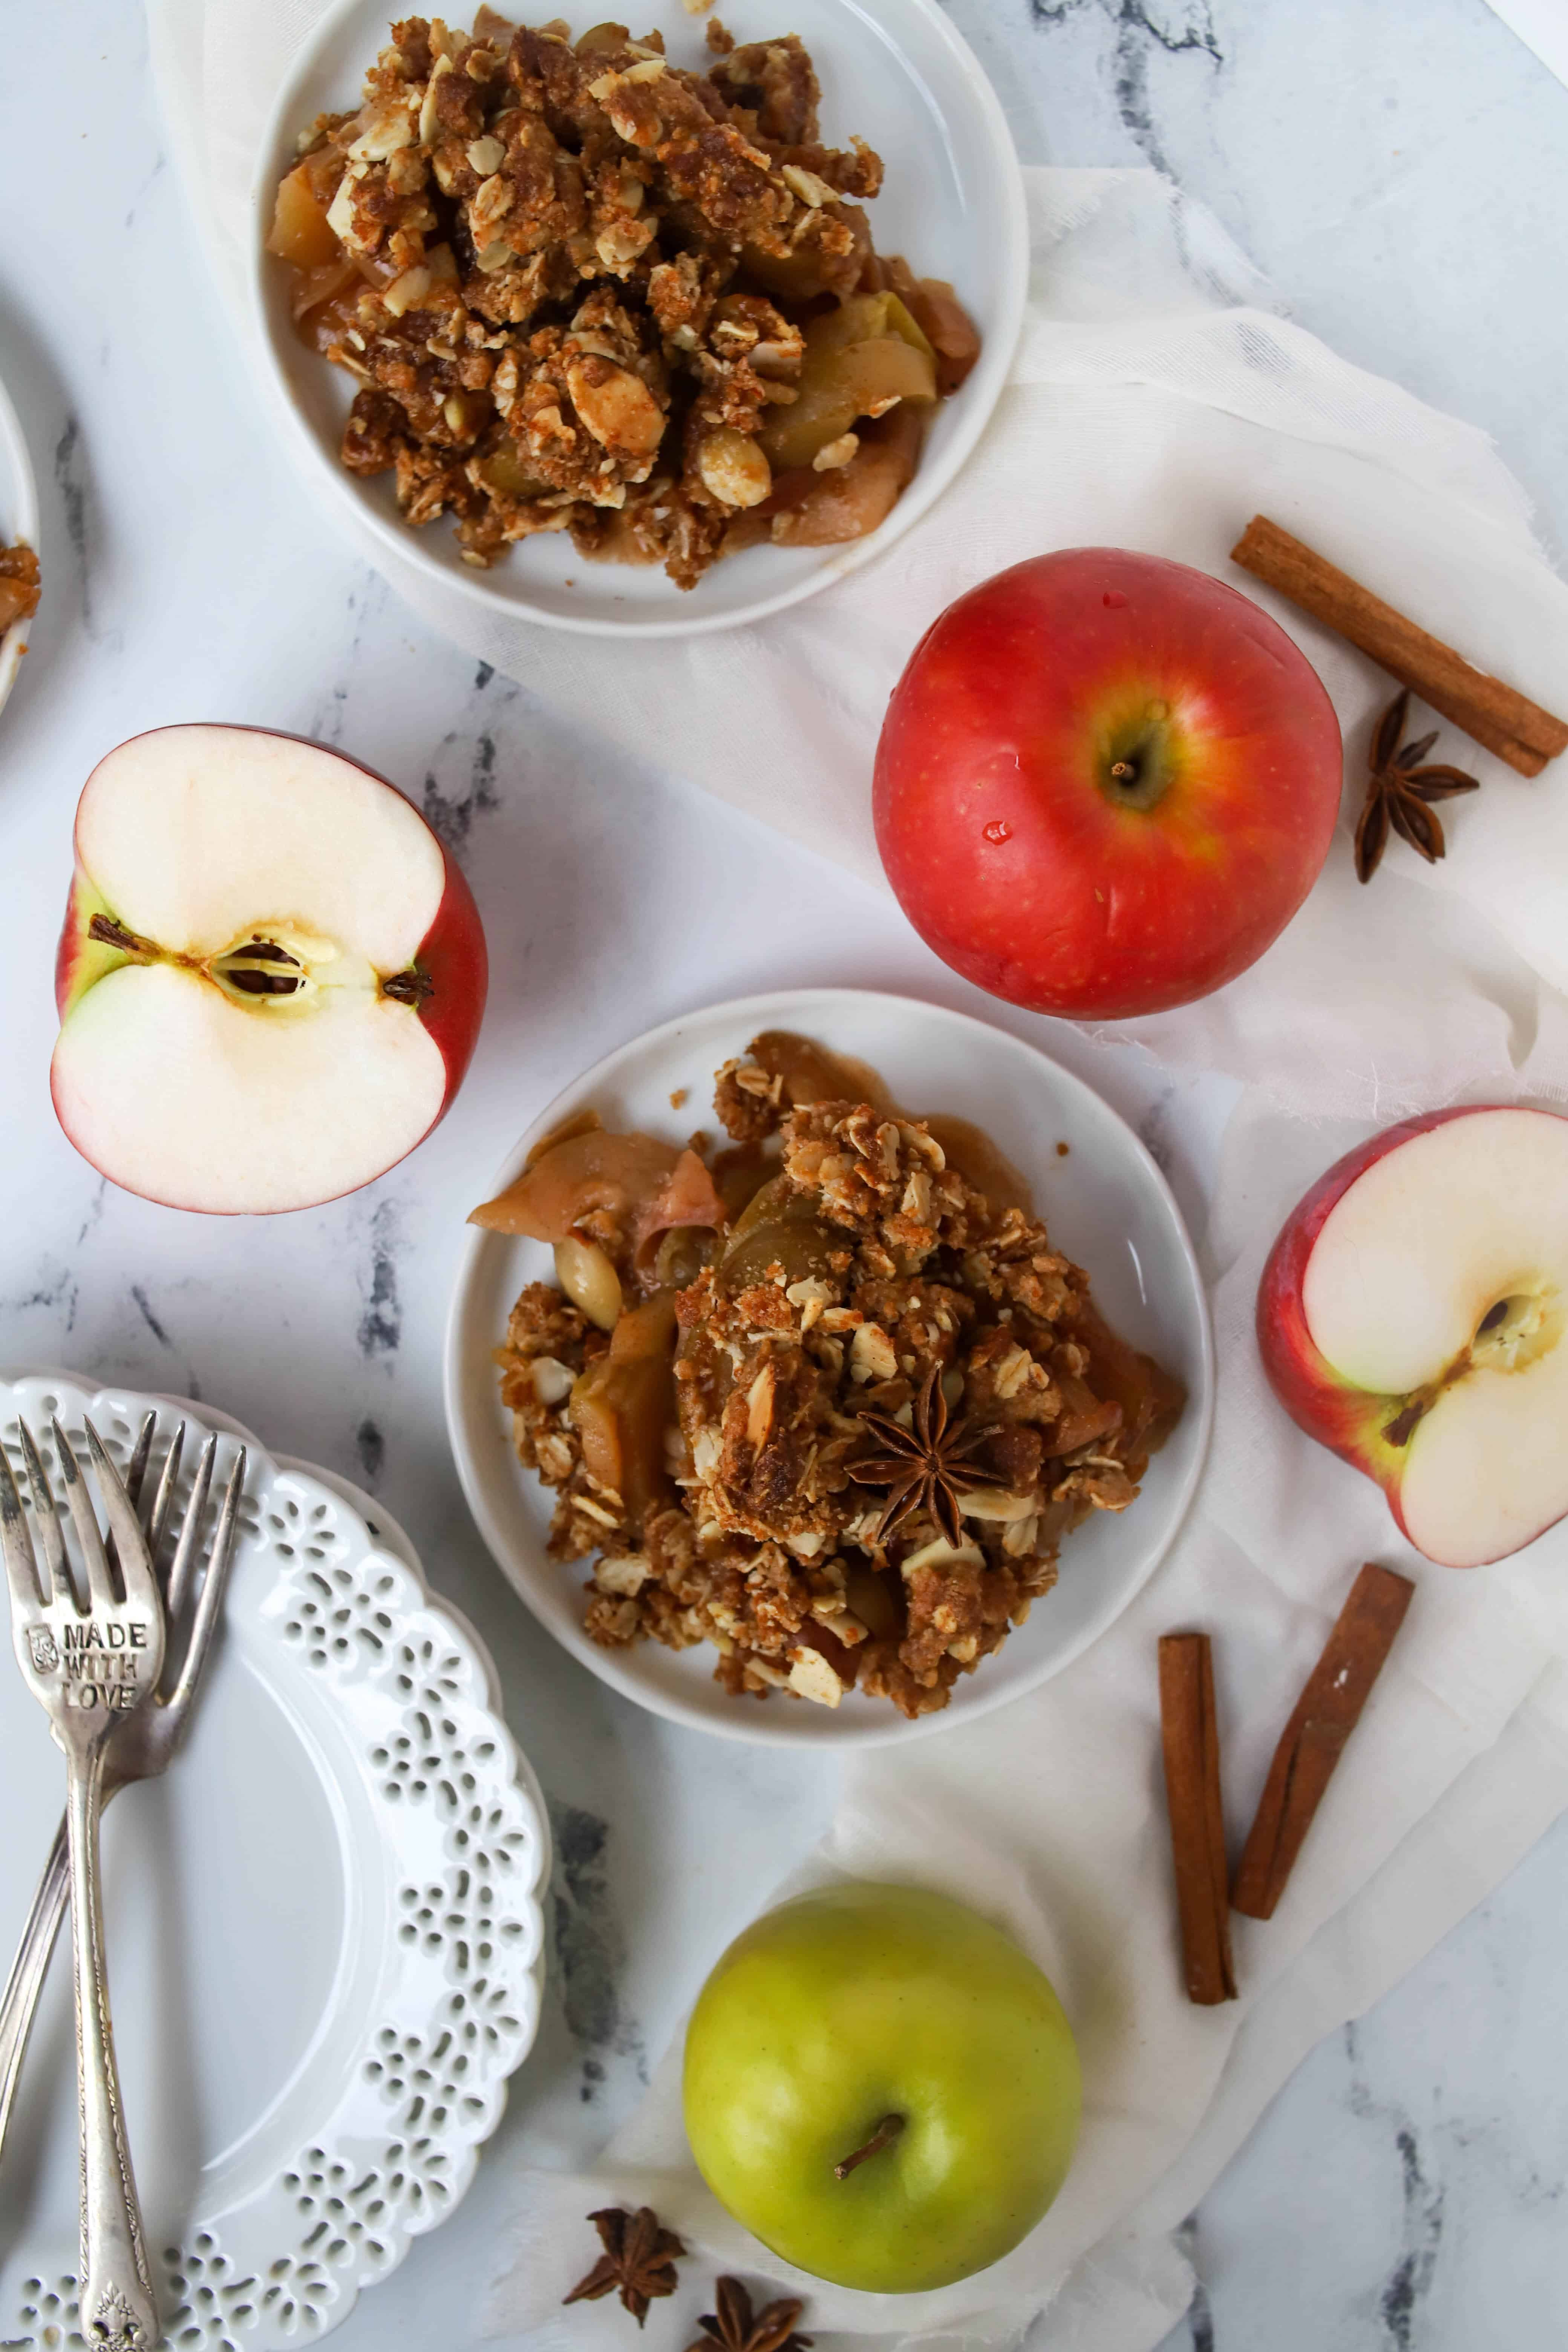 two plates of apple crisp surrounded by apples and cinnamon sticks